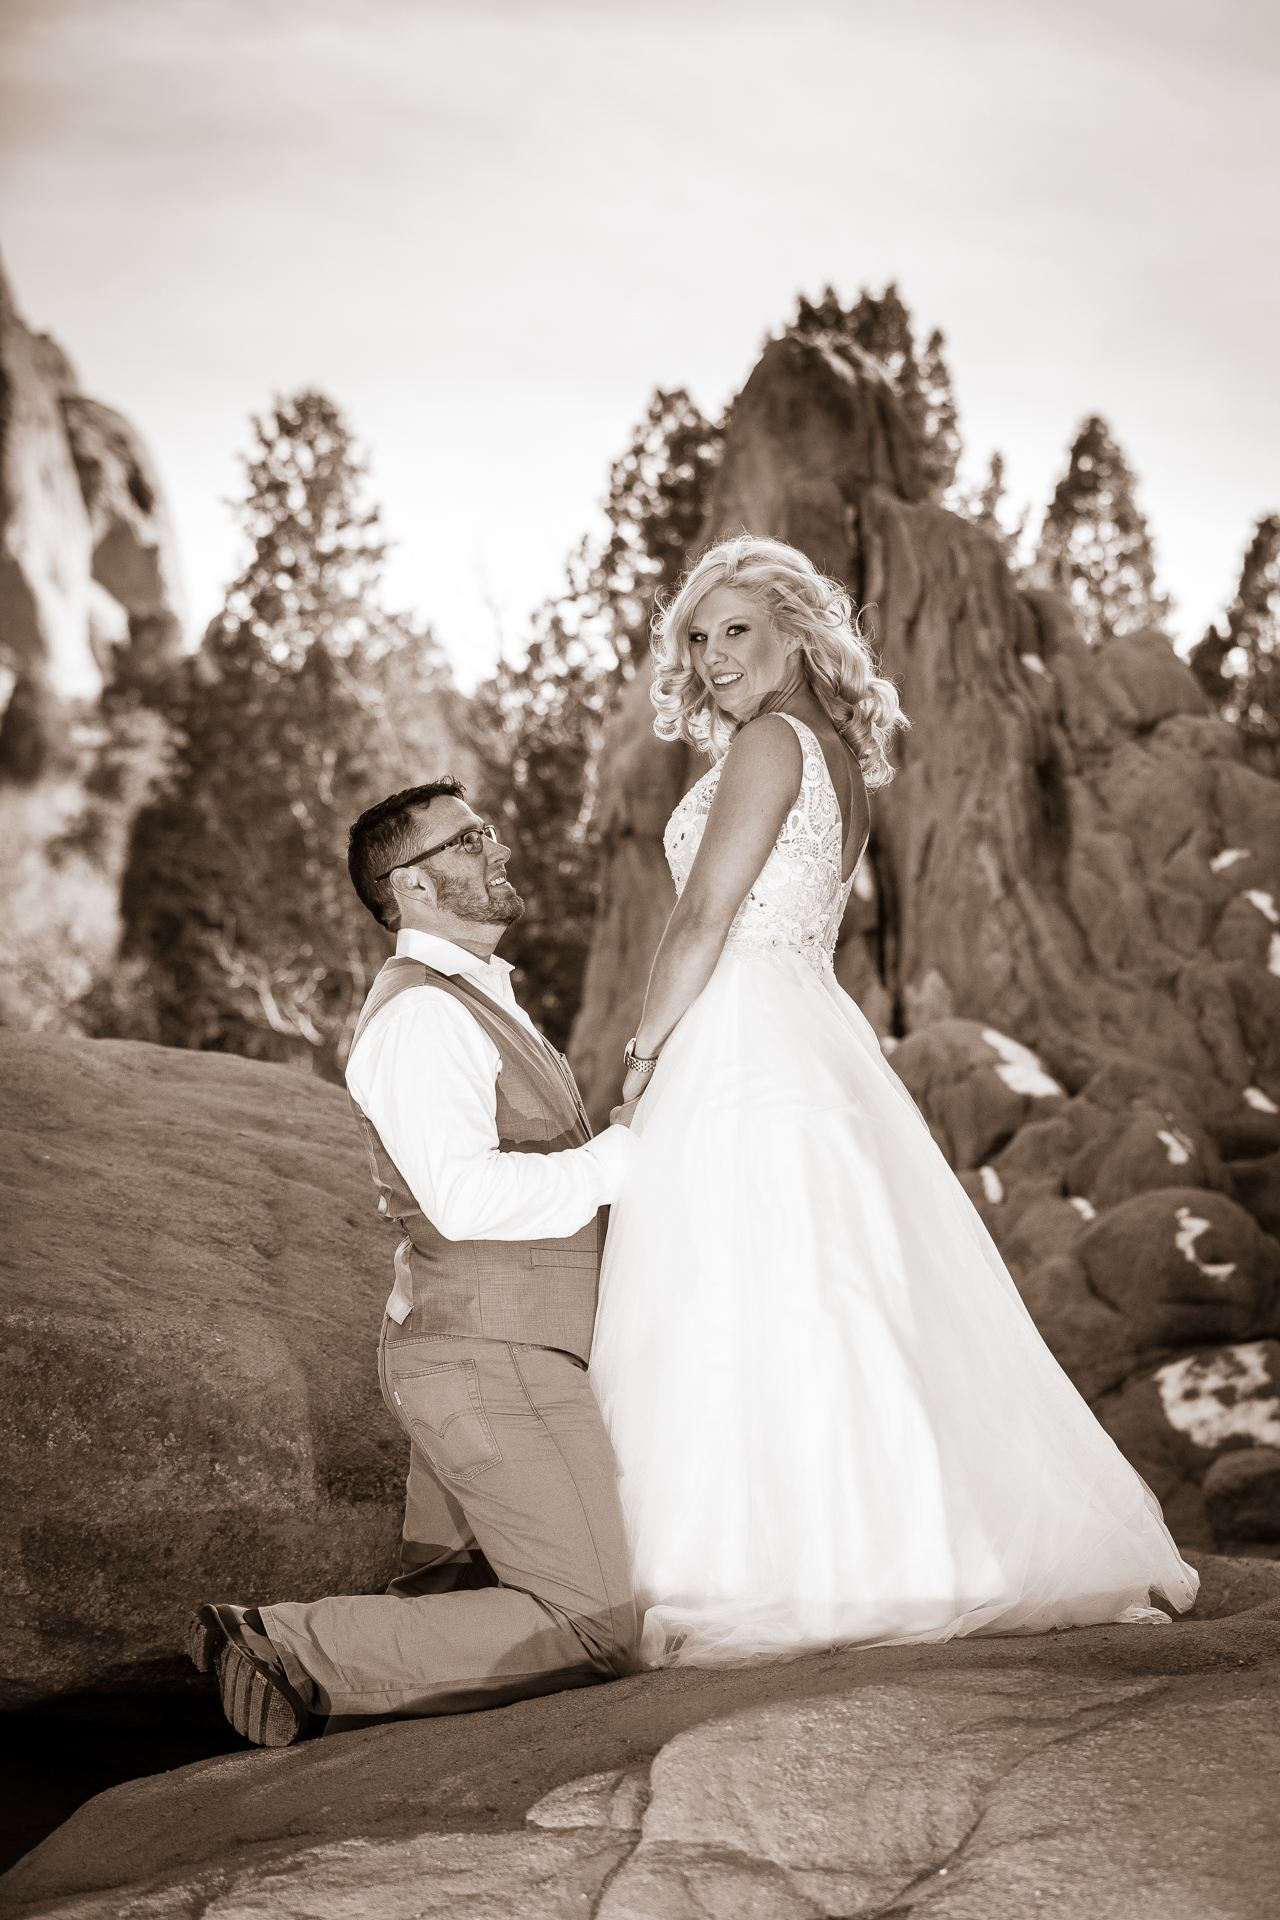 Joe and Jen wedding photography in the Garden of the Gods